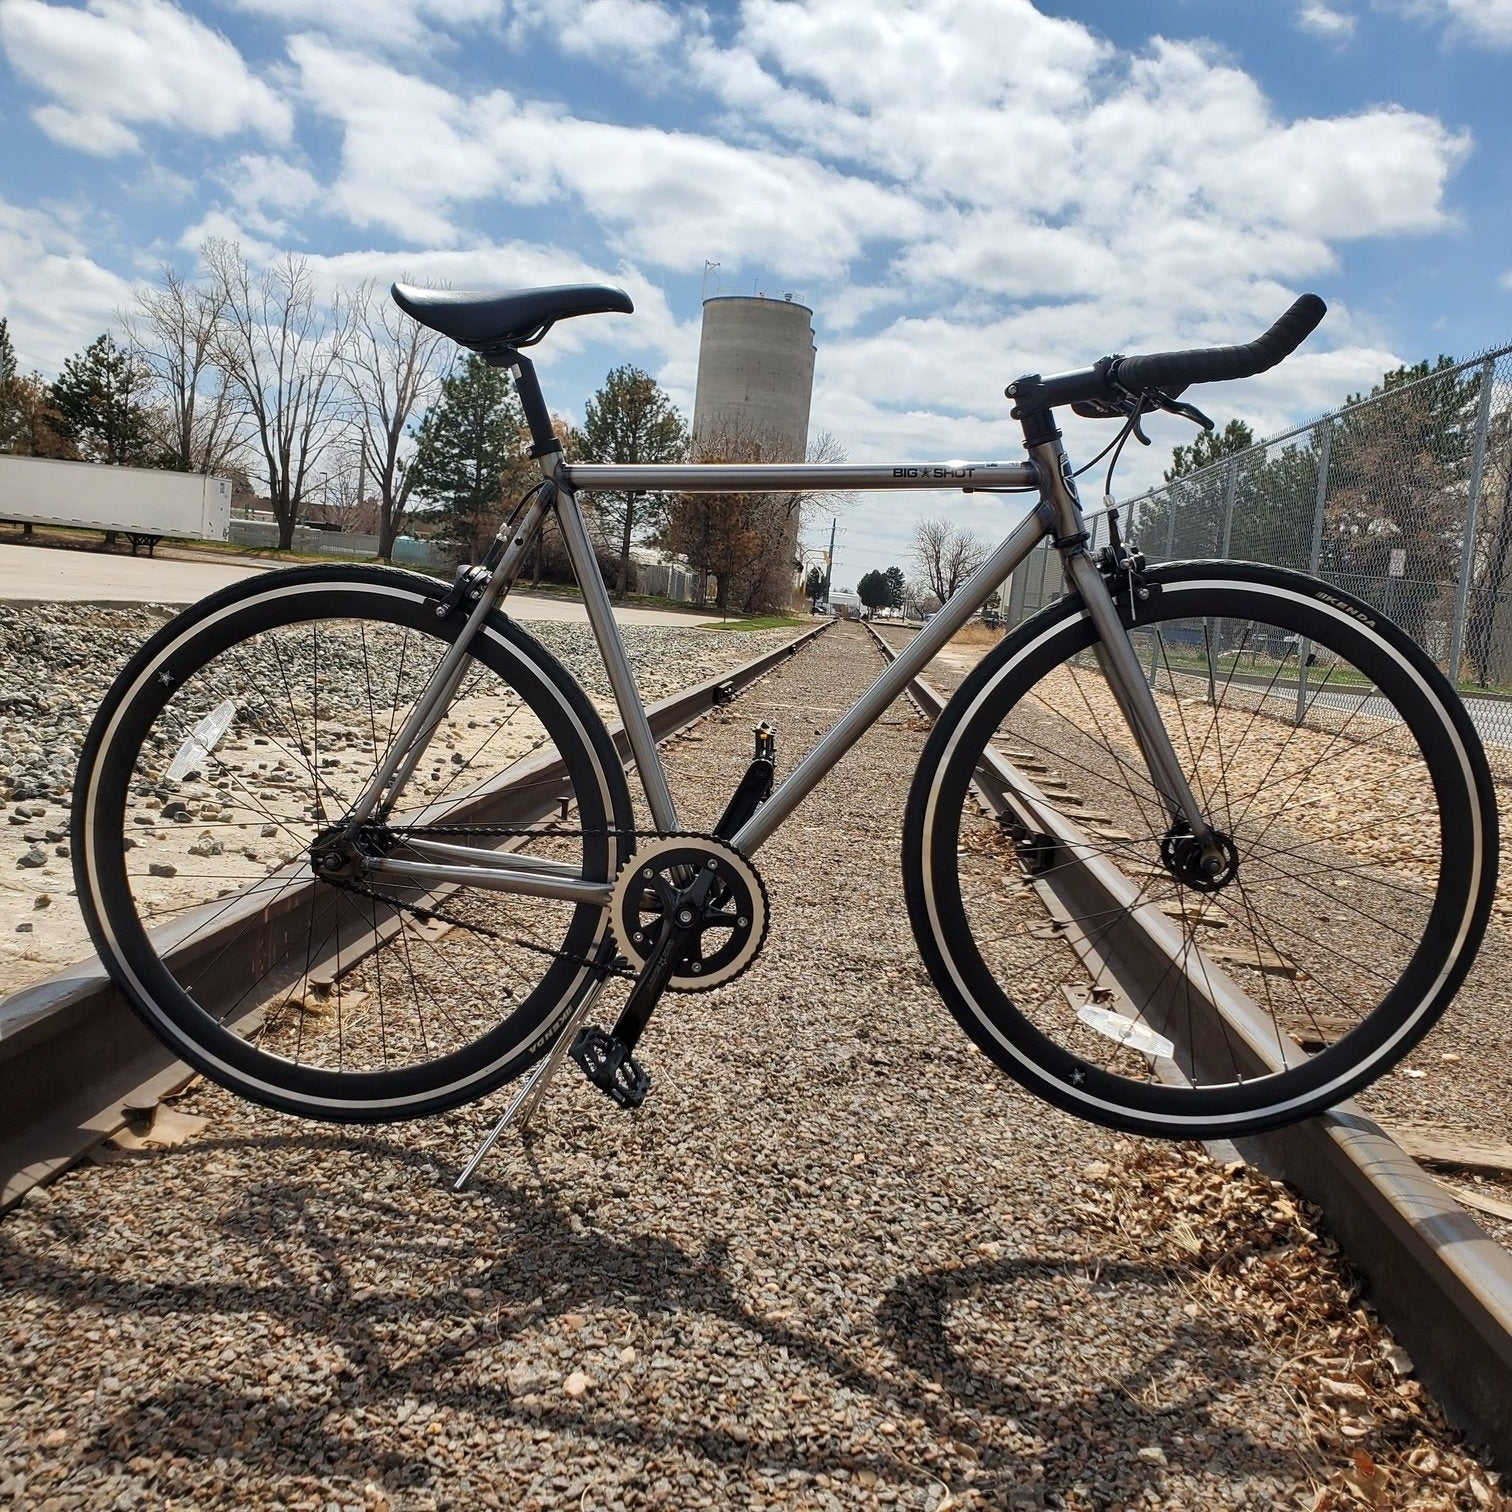 Fixed Gear Bike with a silver frame and black rims on the rail road tracks. Industrial bike.